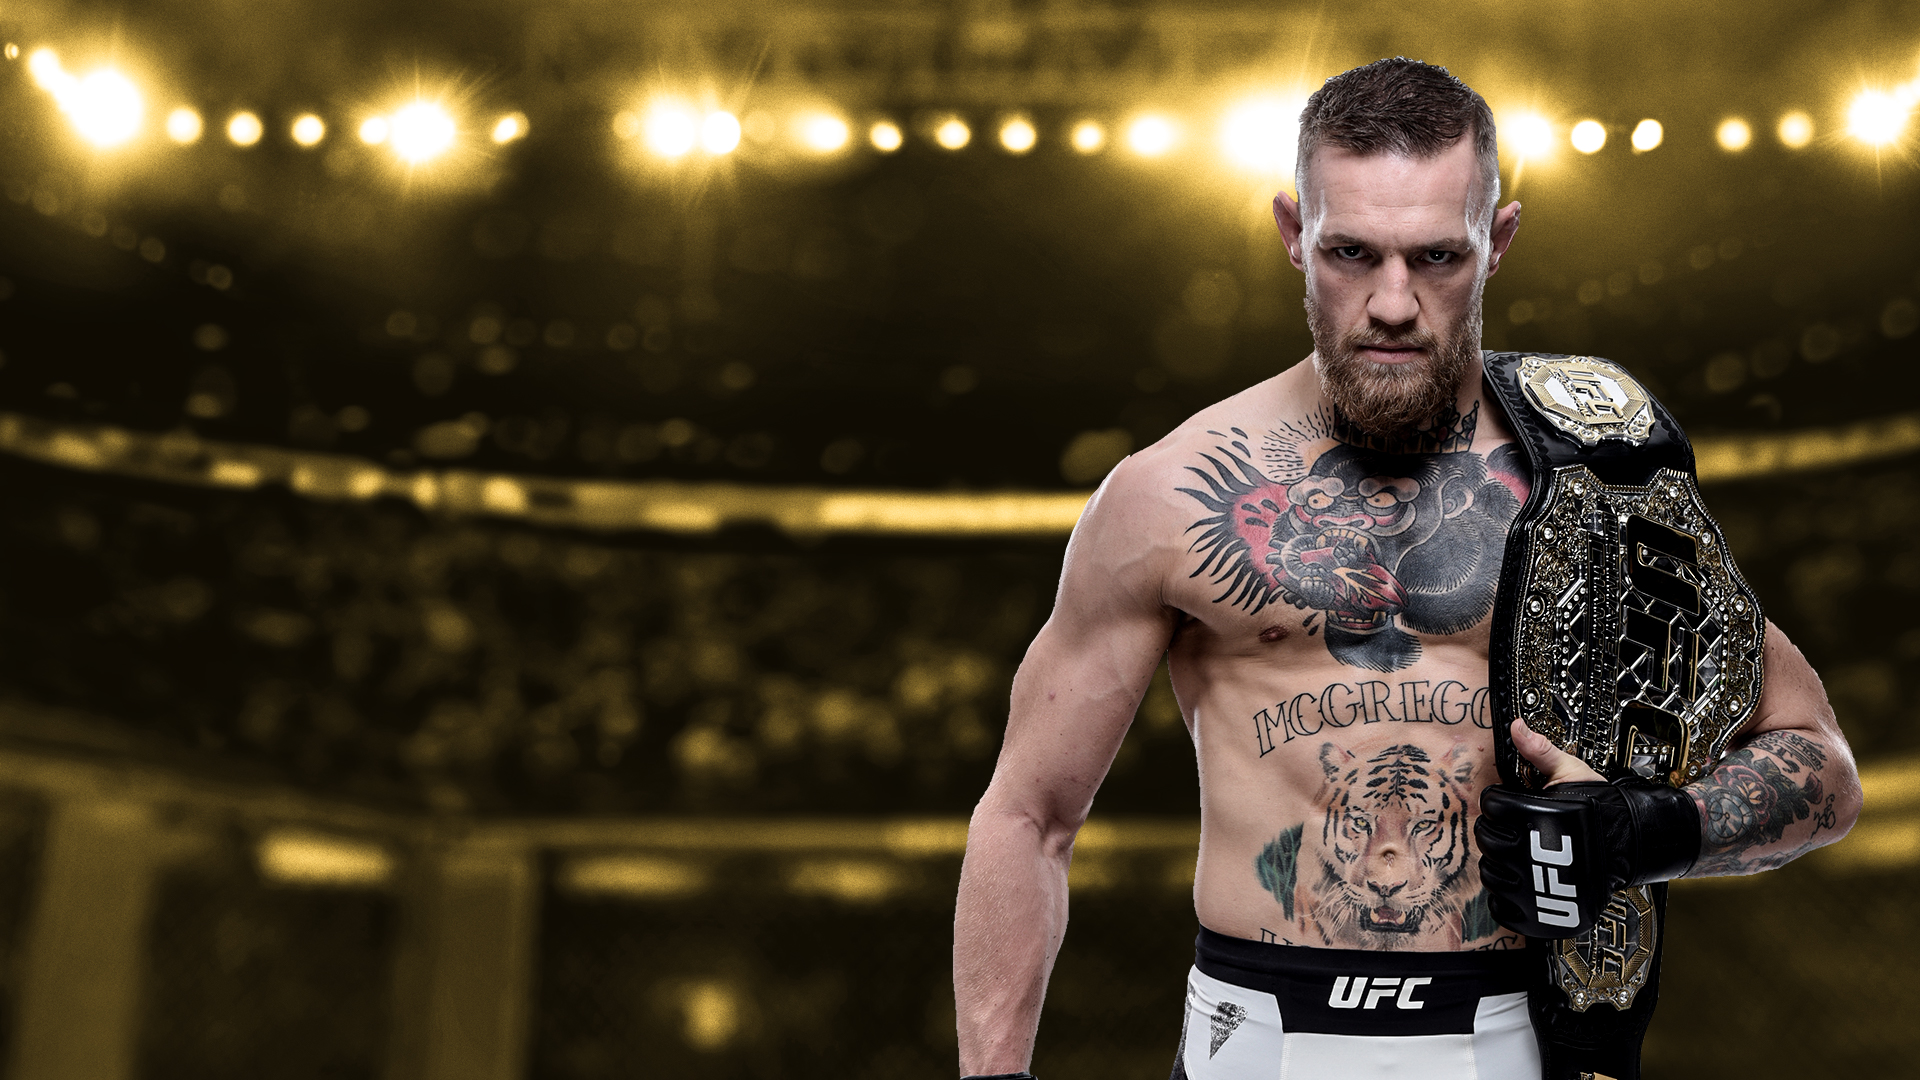 Ufc Store 2229745 Hd Wallpaper Backgrounds Download